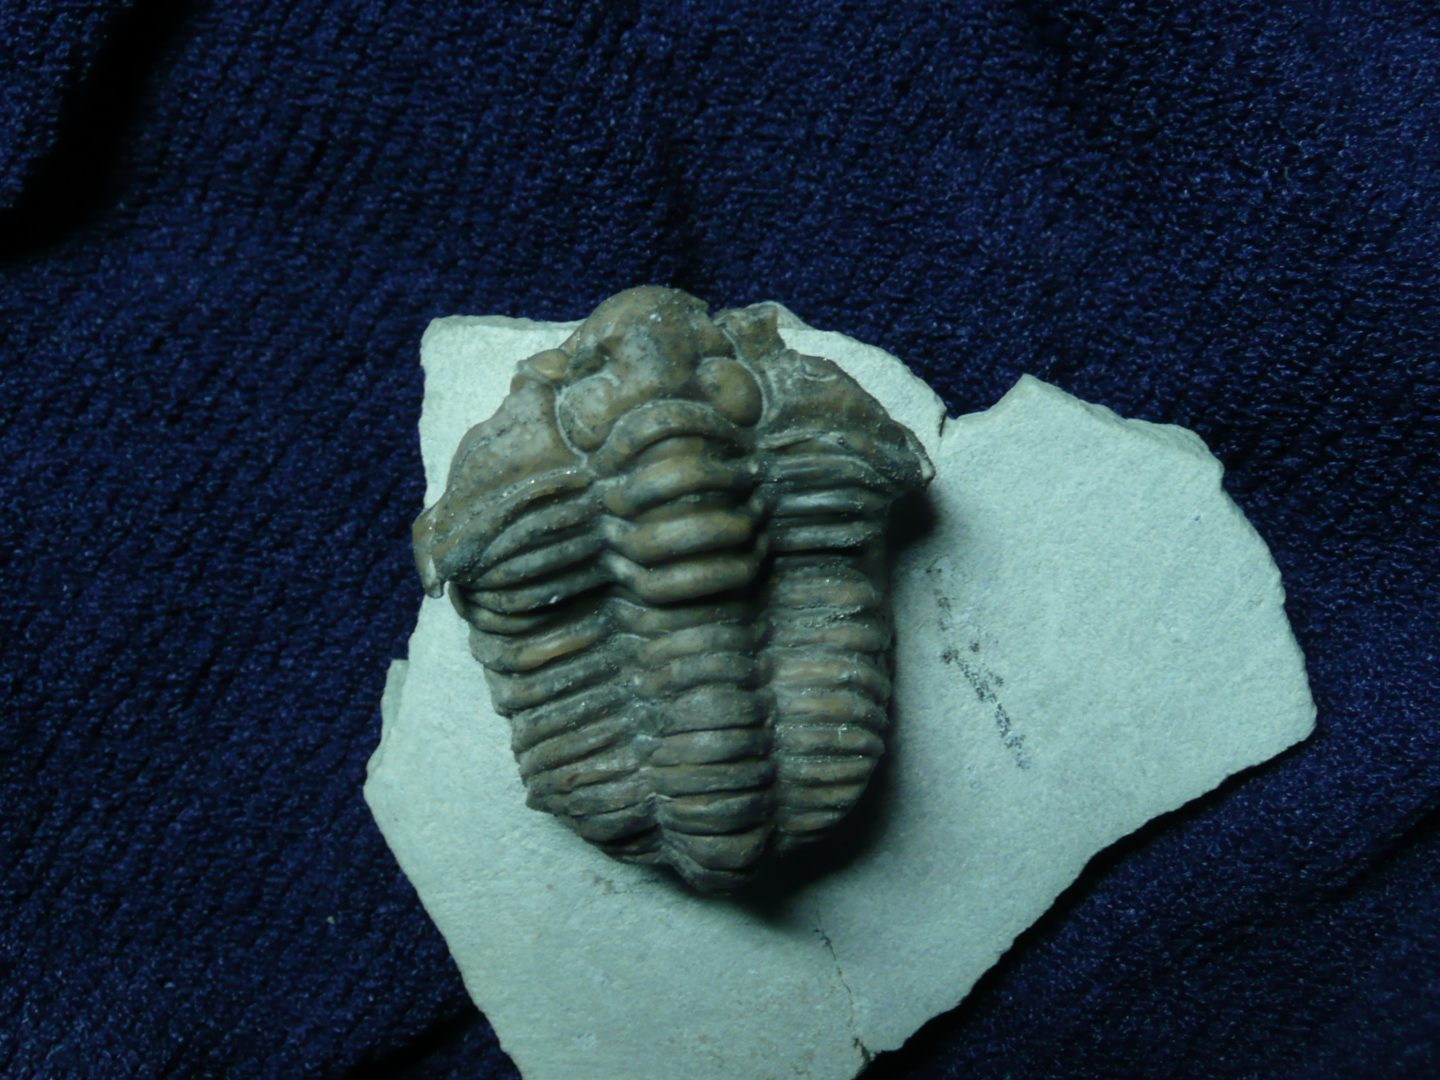 Figure 4. Calymene from Silurian Massie Shale. Specimen is 2 inches long. Prepared by Ben Cooper.